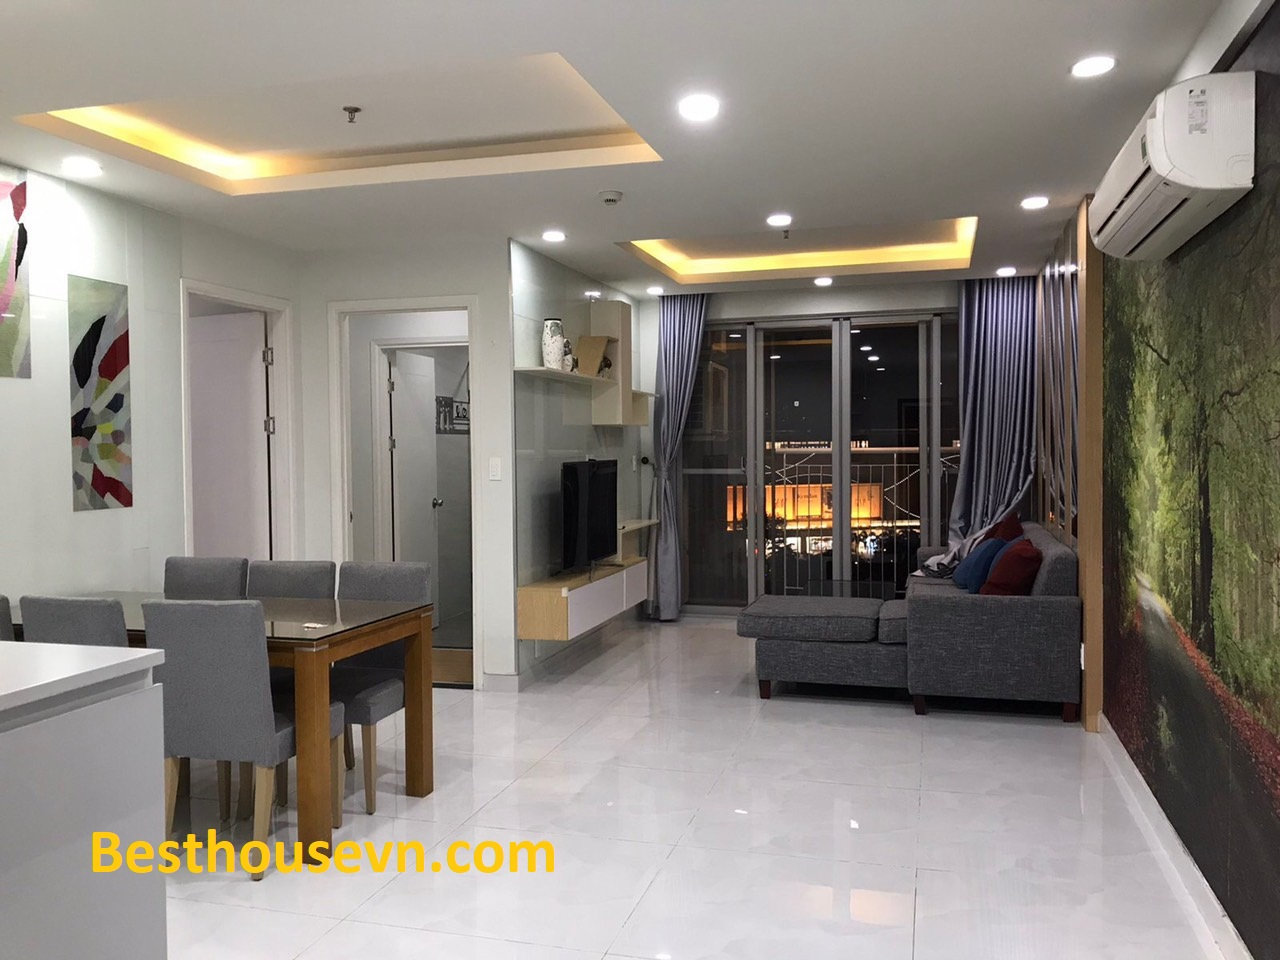 Scenic-valley-apartment-for rent-in-phu-my-hung-district 7